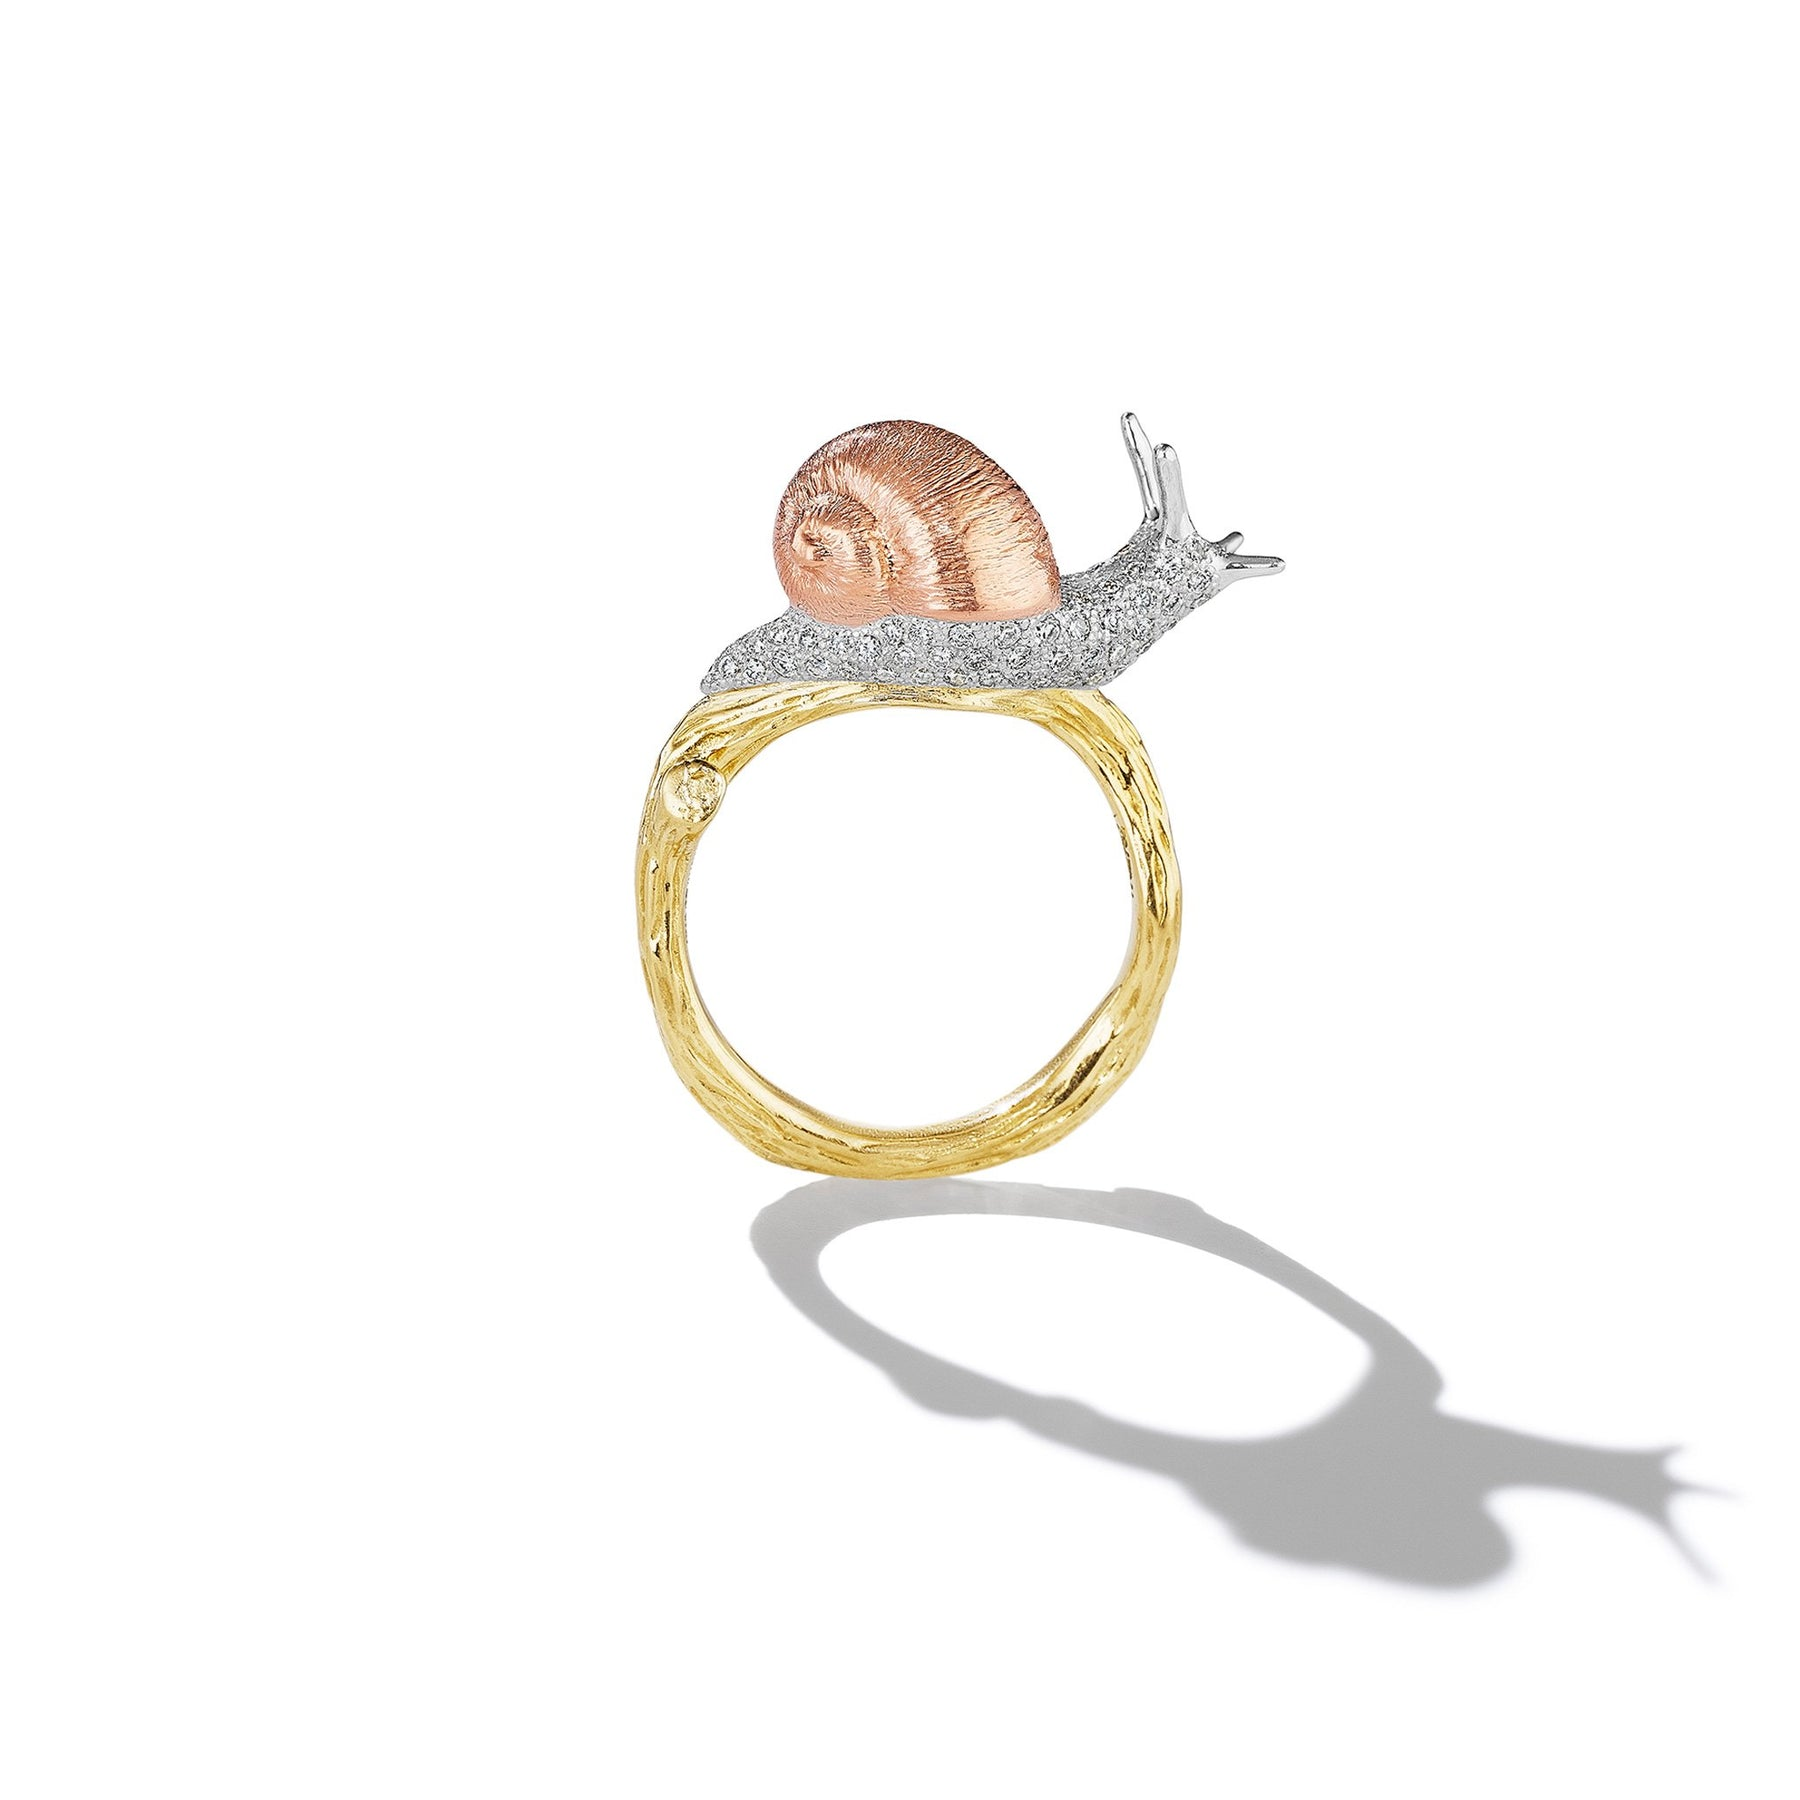 Mimi-So-Wonderland-Snail-Diamond-Twig-Ring_18k Yellow/White/Rose Gold